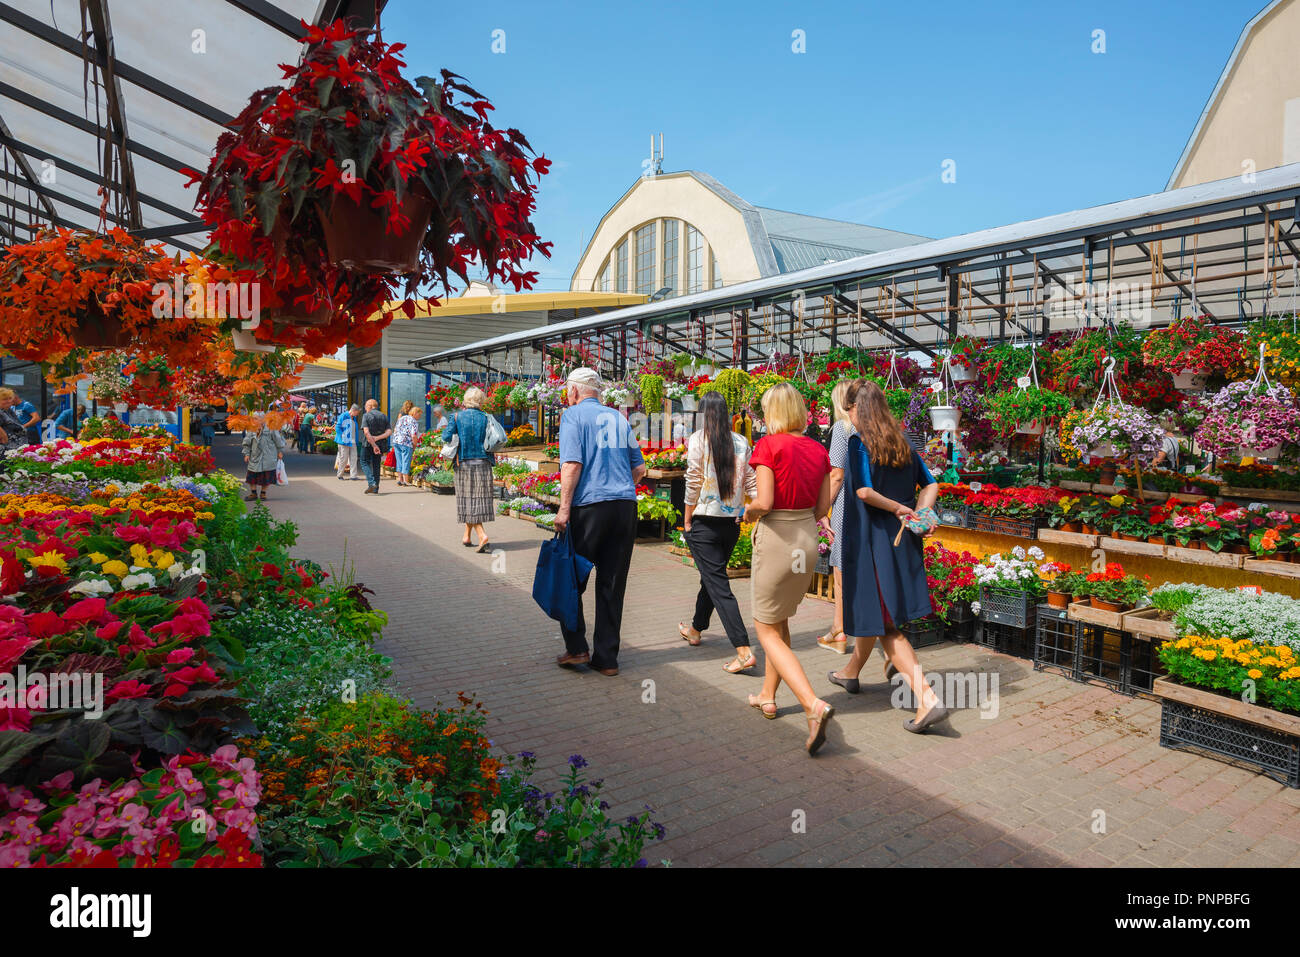 Riga Central Market, view in summer of Latvian people walking through the flower market in the Central Market area of Riga, Latvia. - Stock Image